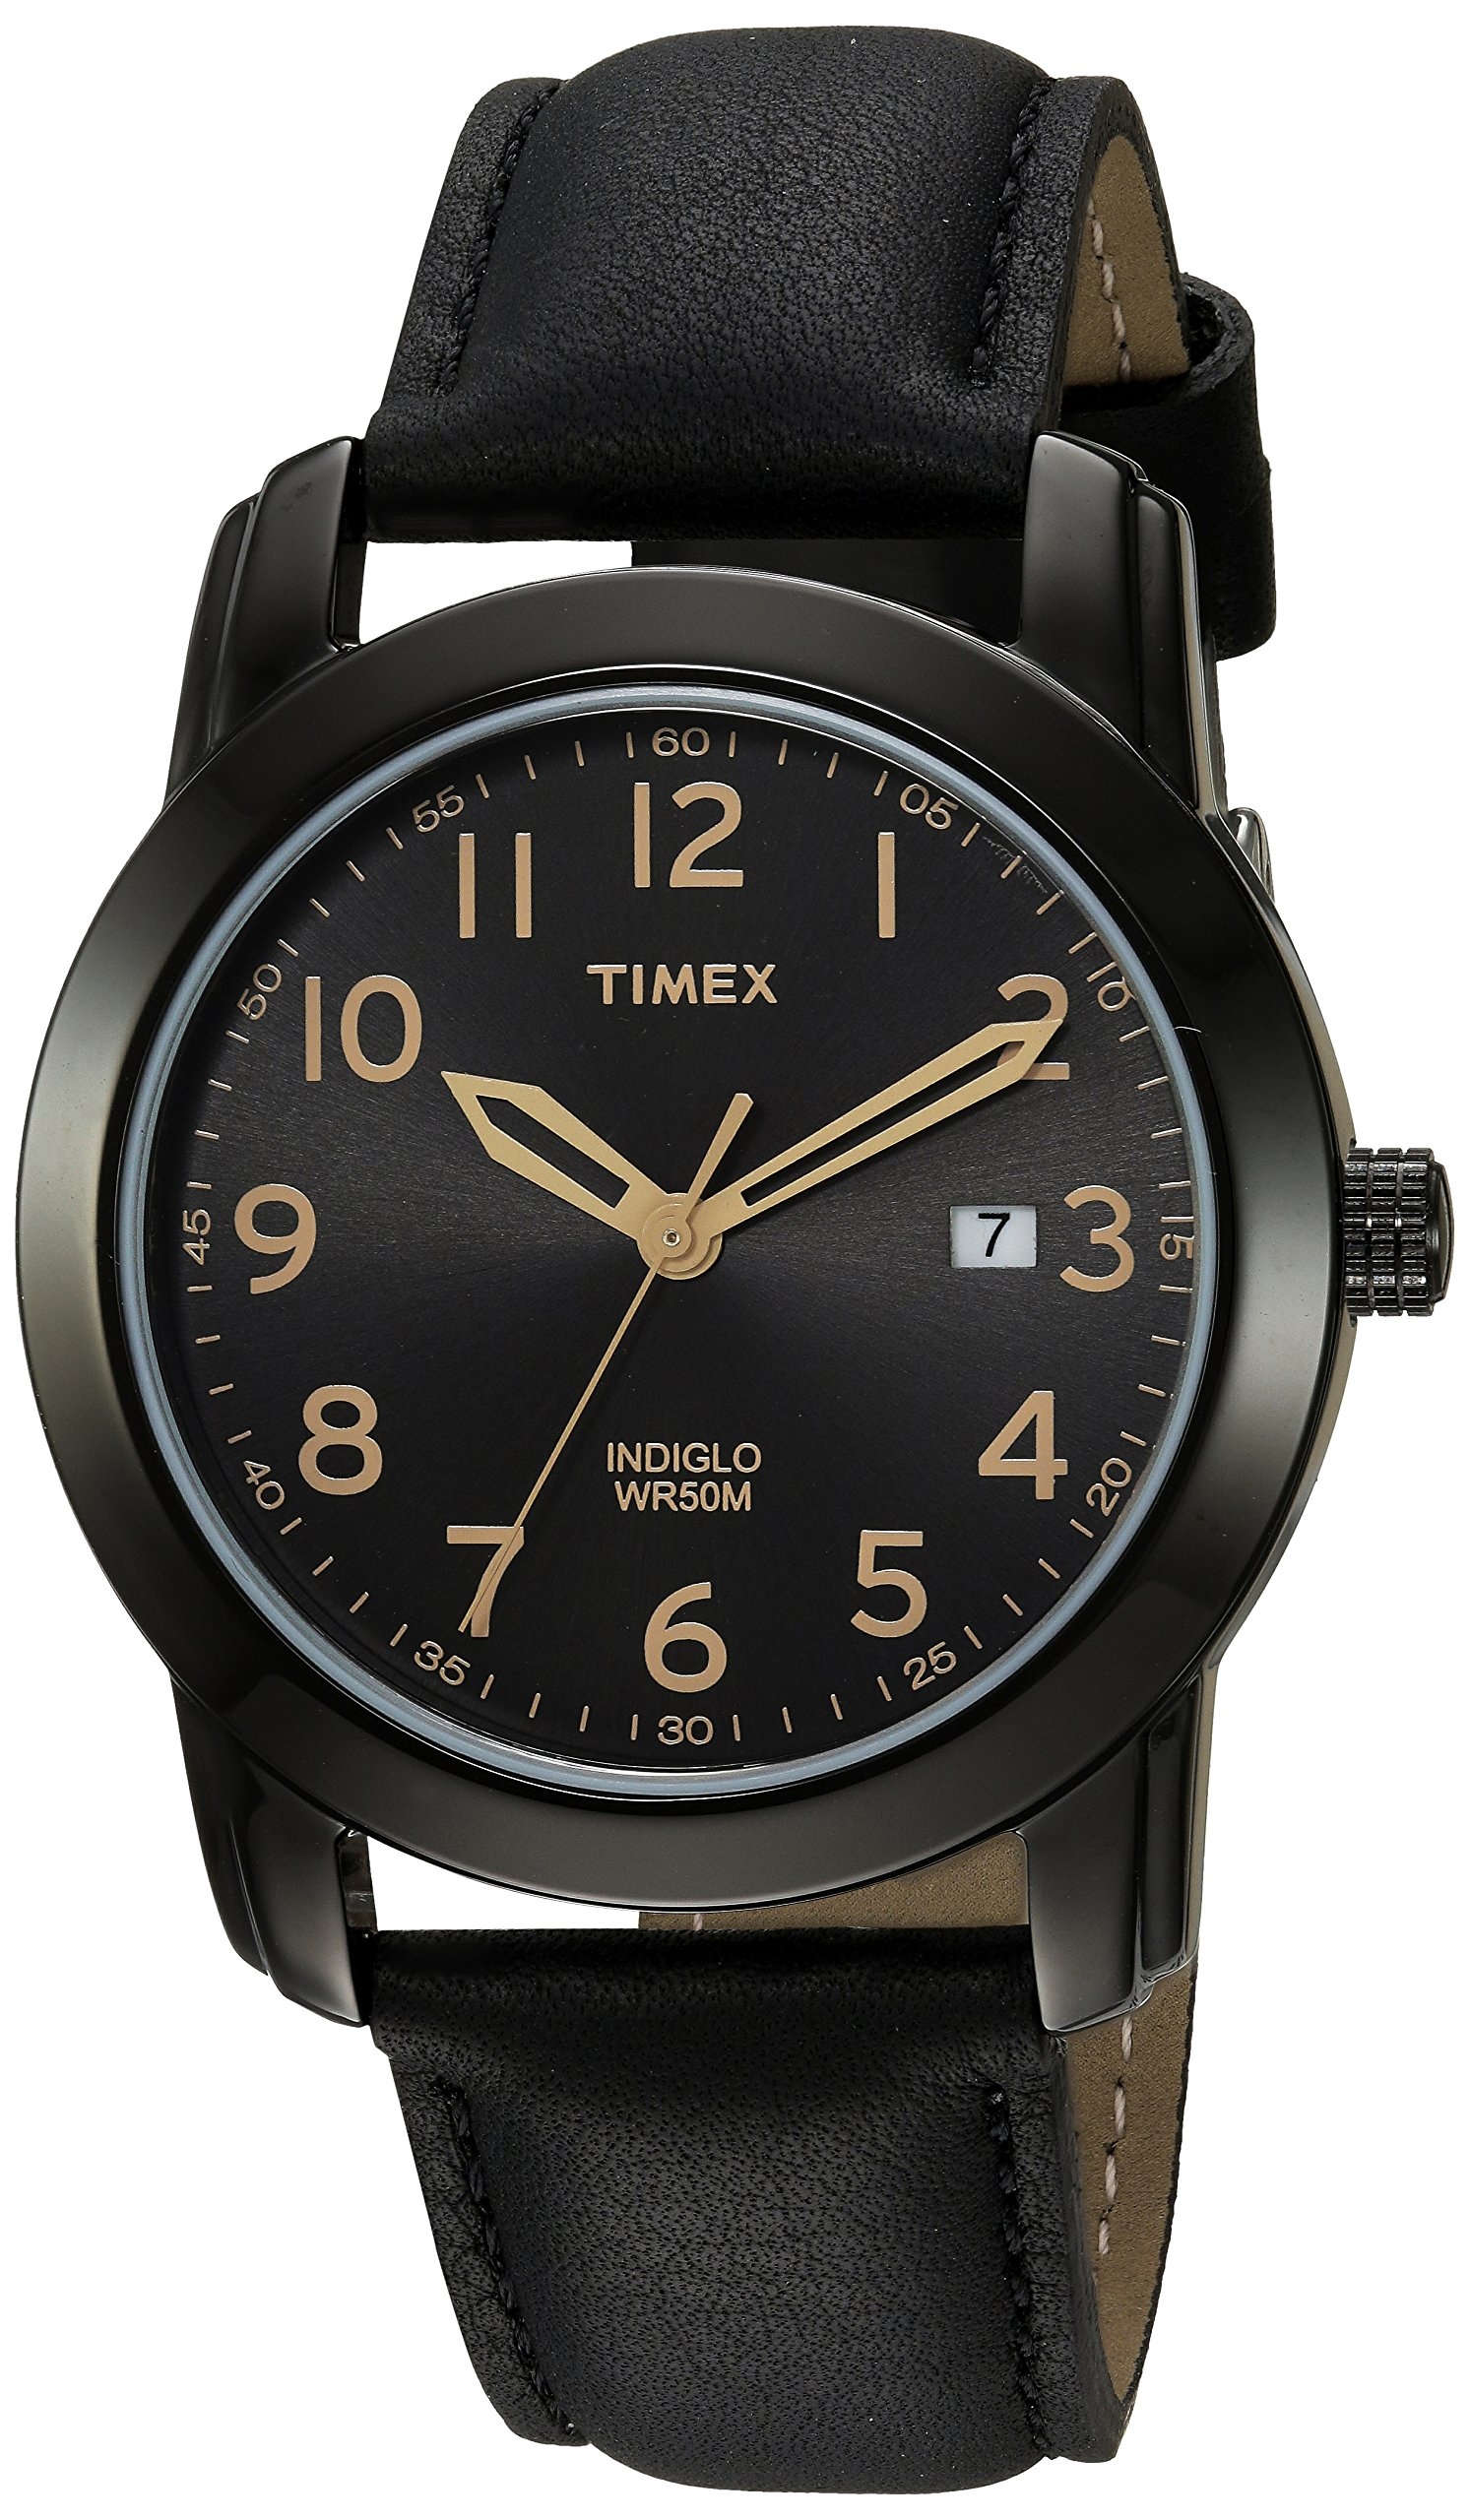 Timex Men's TW2R29800 Highland Street Black Leather Strap Watch by Timex (Image #1)